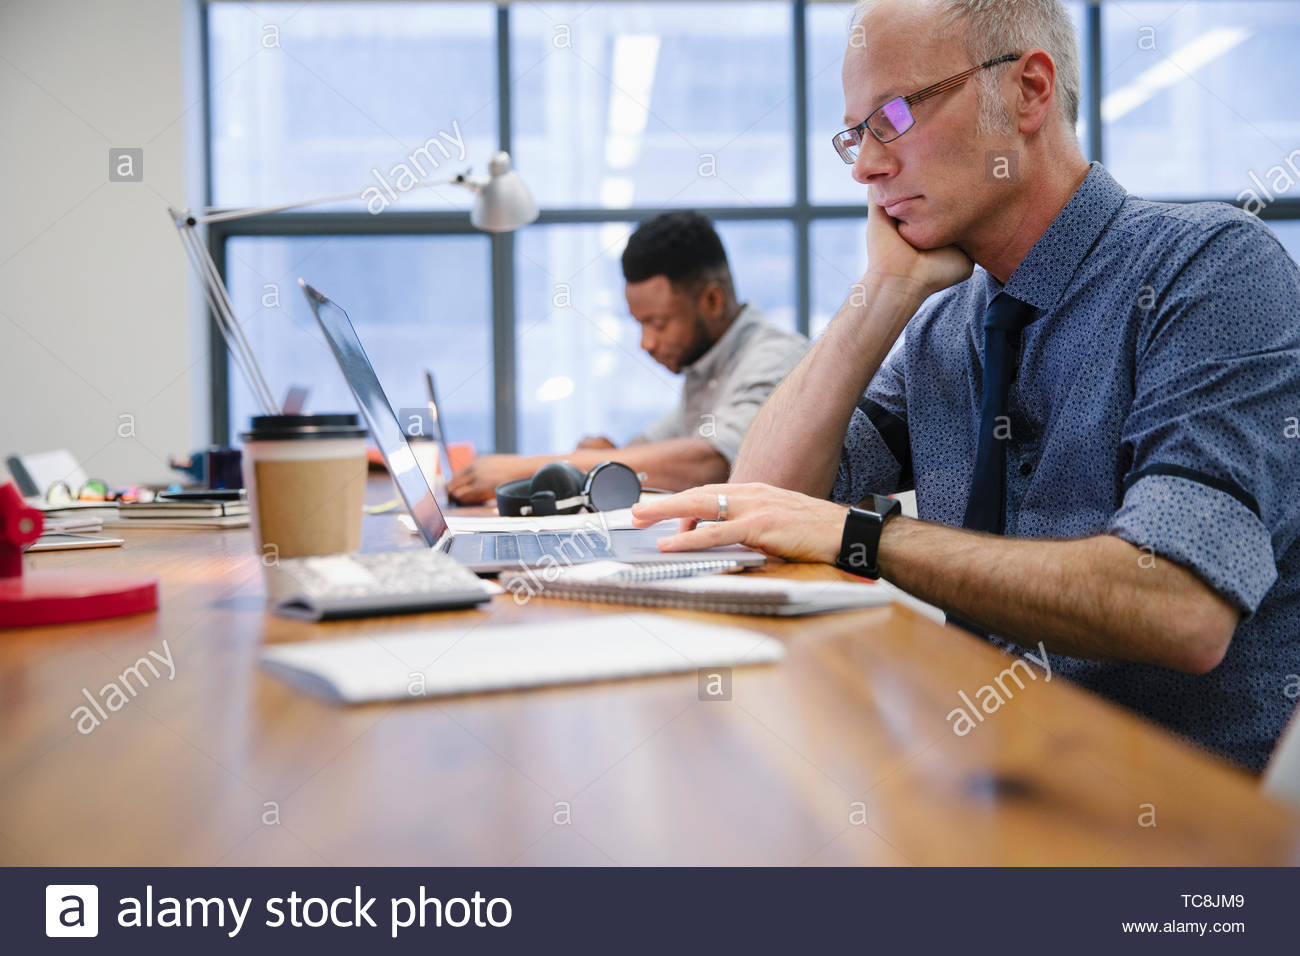 Focused businessman working at laptop in coworking space Stock Photo